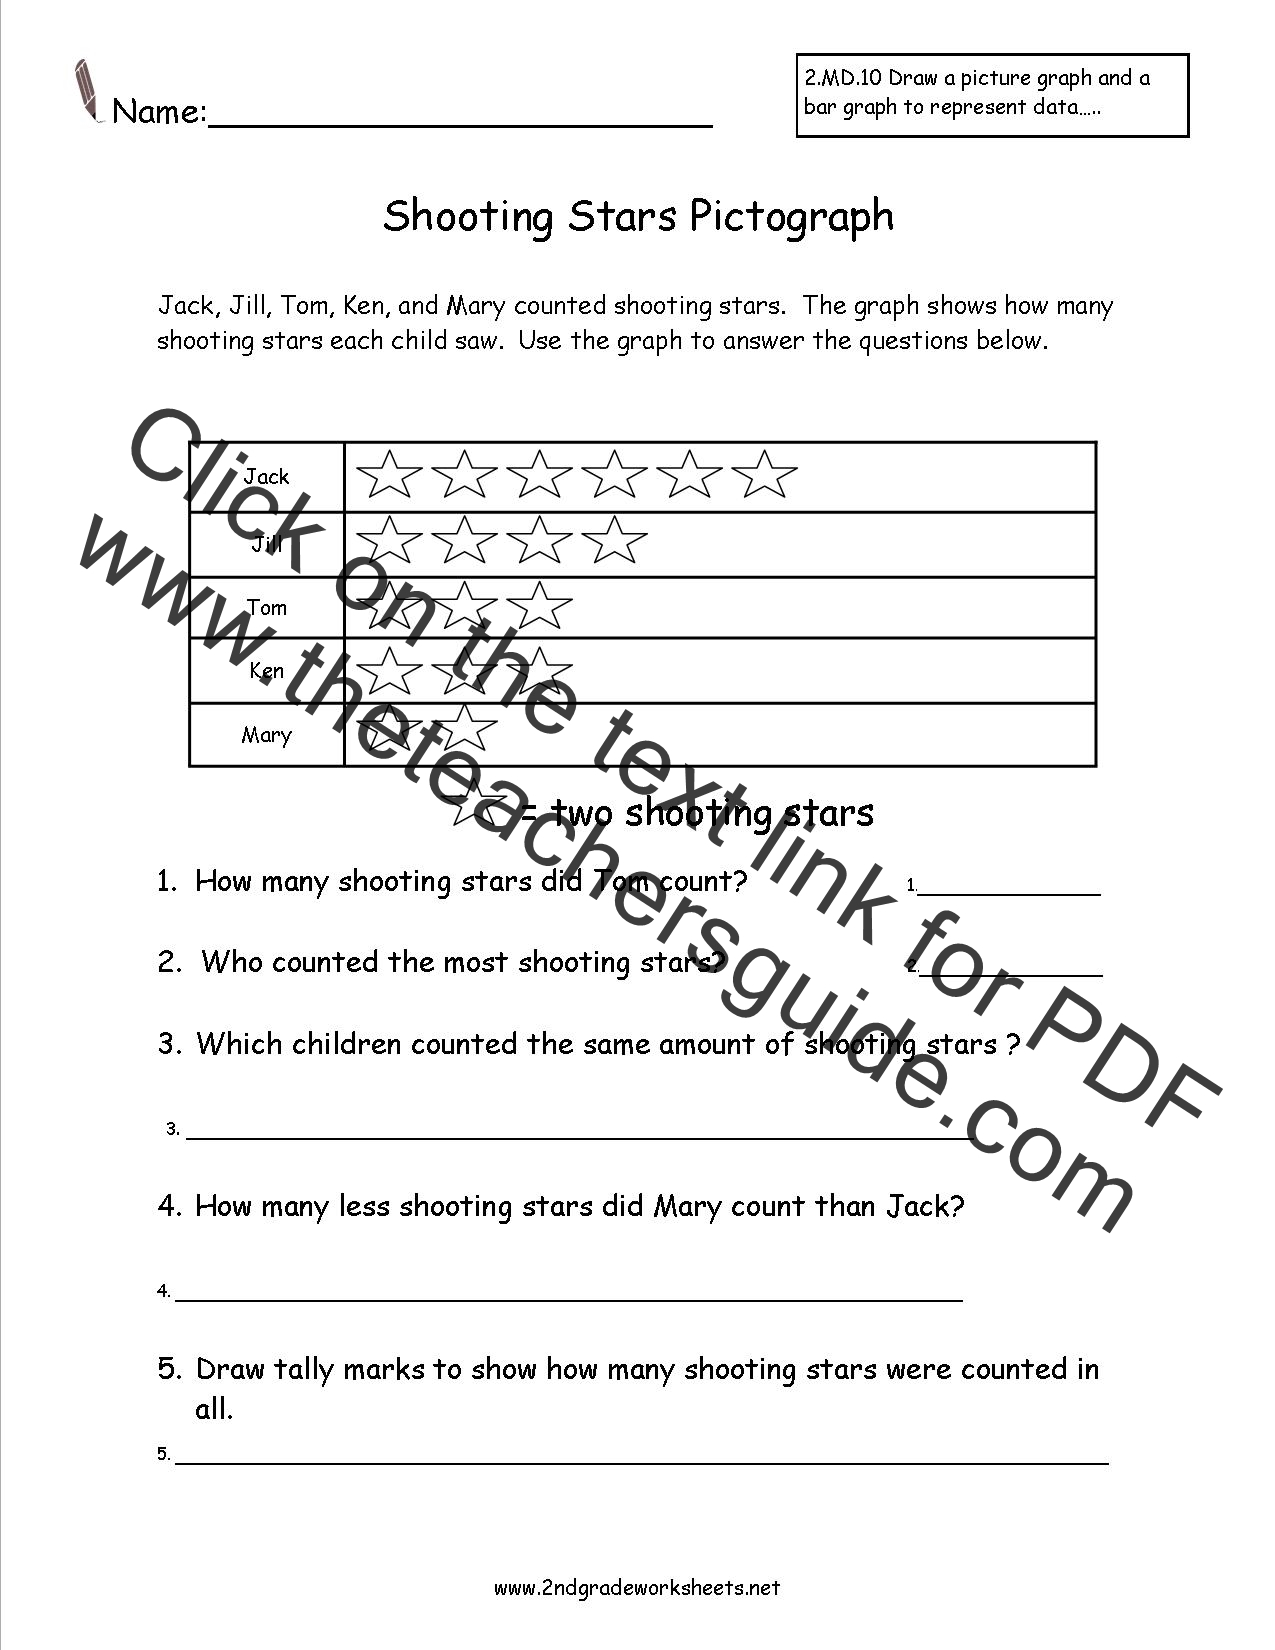 Uncategorized Second Grade Science Worksheets second grade reading and creating pictograph worksheets shooting stars worksheet